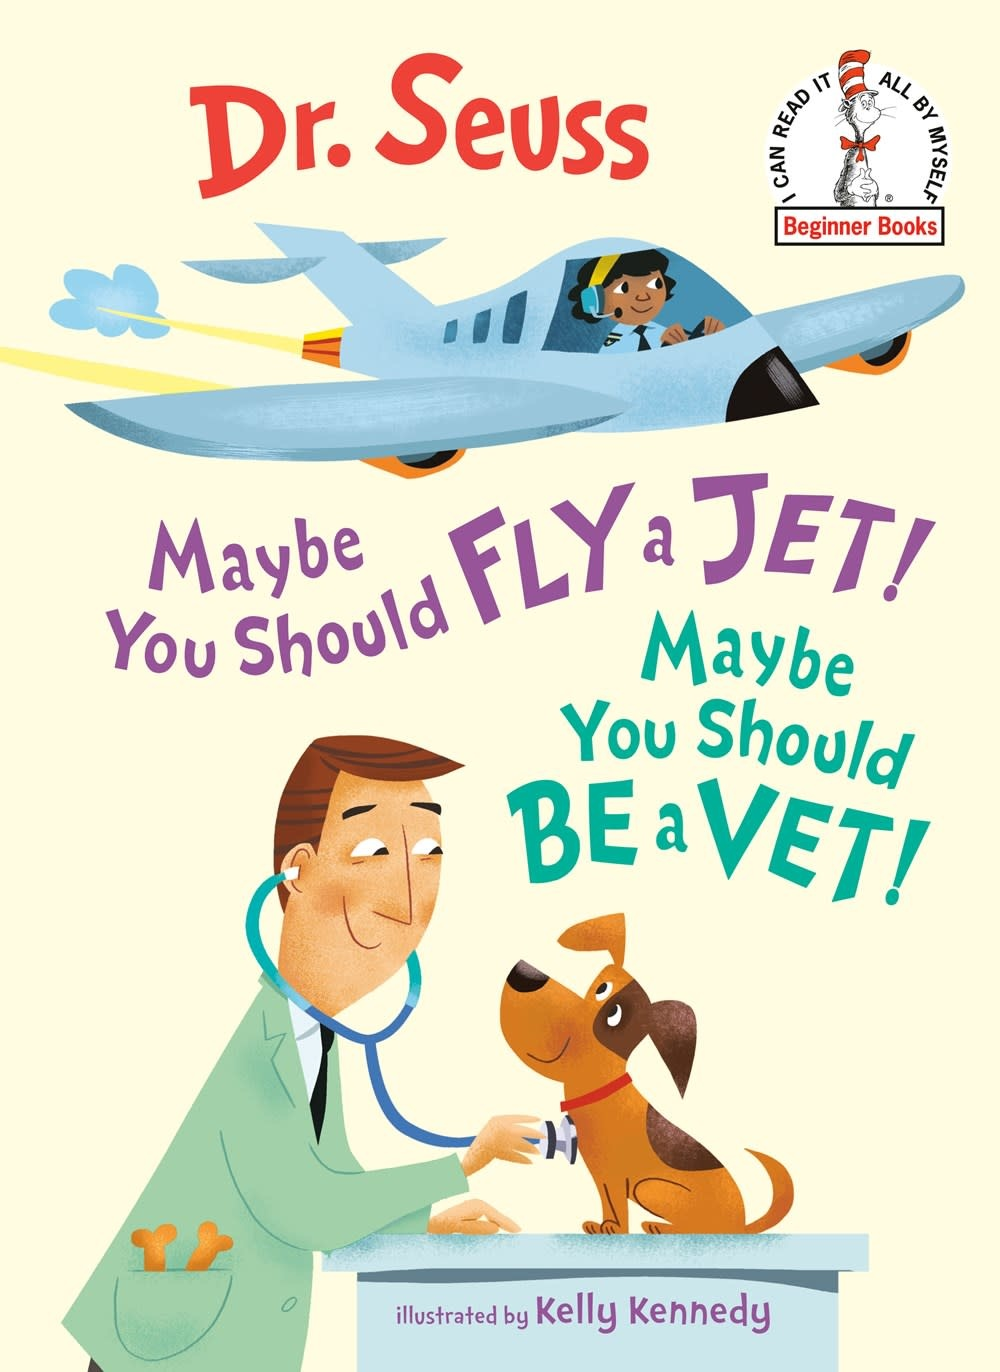 Random House Books for Young Readers Dr. Seuss Library: Maybe You Should Fly a Jet! Maybe You Should Be a Vet!